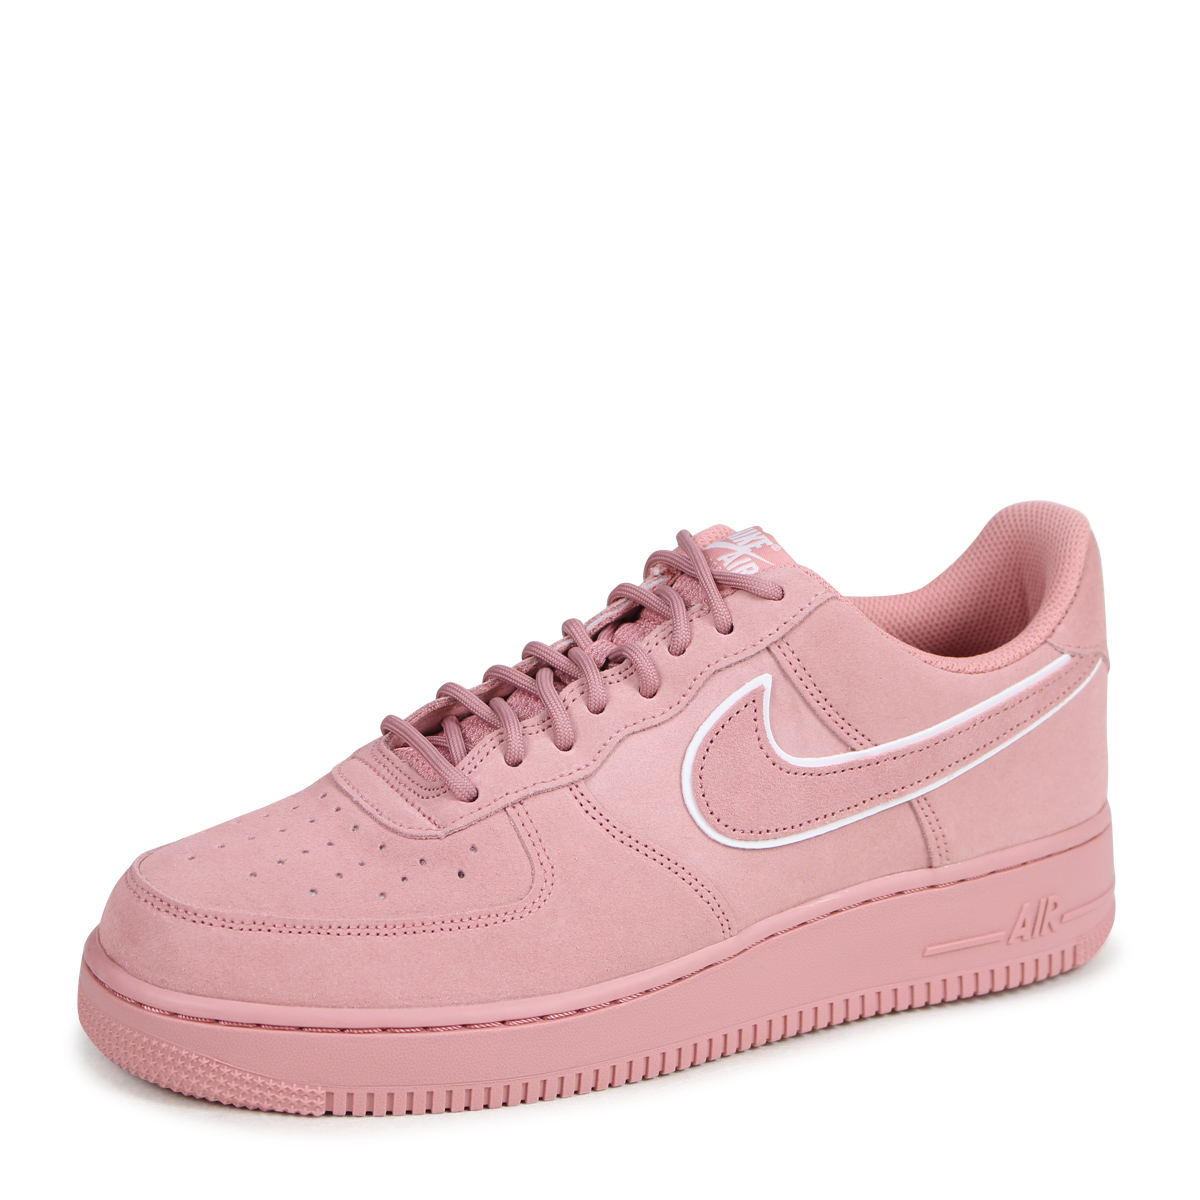 6b52be7c698 NIKE AIR FORCE 1 SUEDE Nike air force 1 07 LV8 sneakers men AA1117-601 pink   load planned Shinnyu load in reservation product 3 30 containing   183